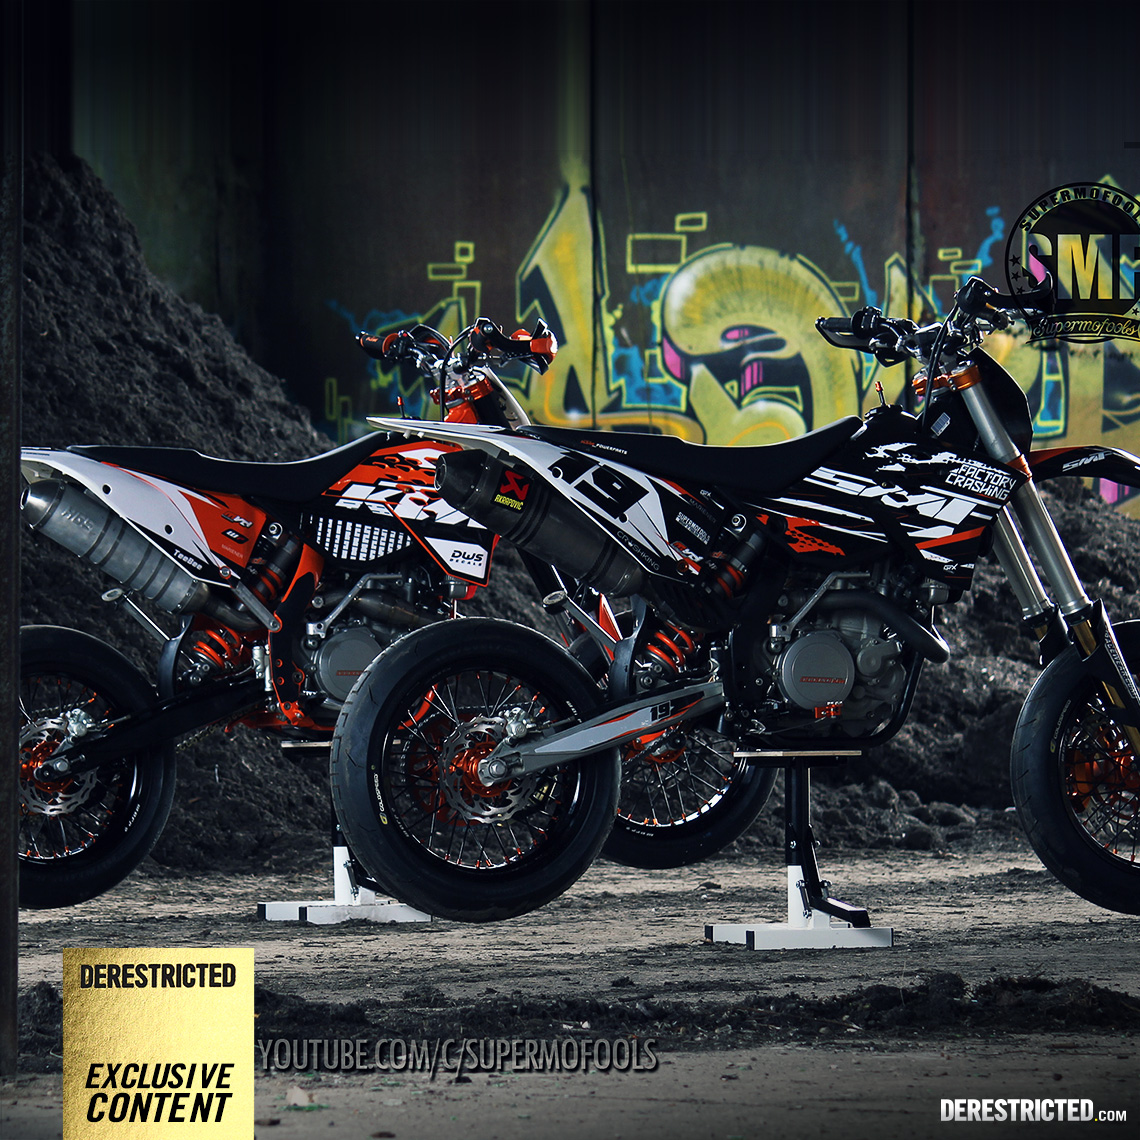 KTM-EXC530-supermoto-featured2